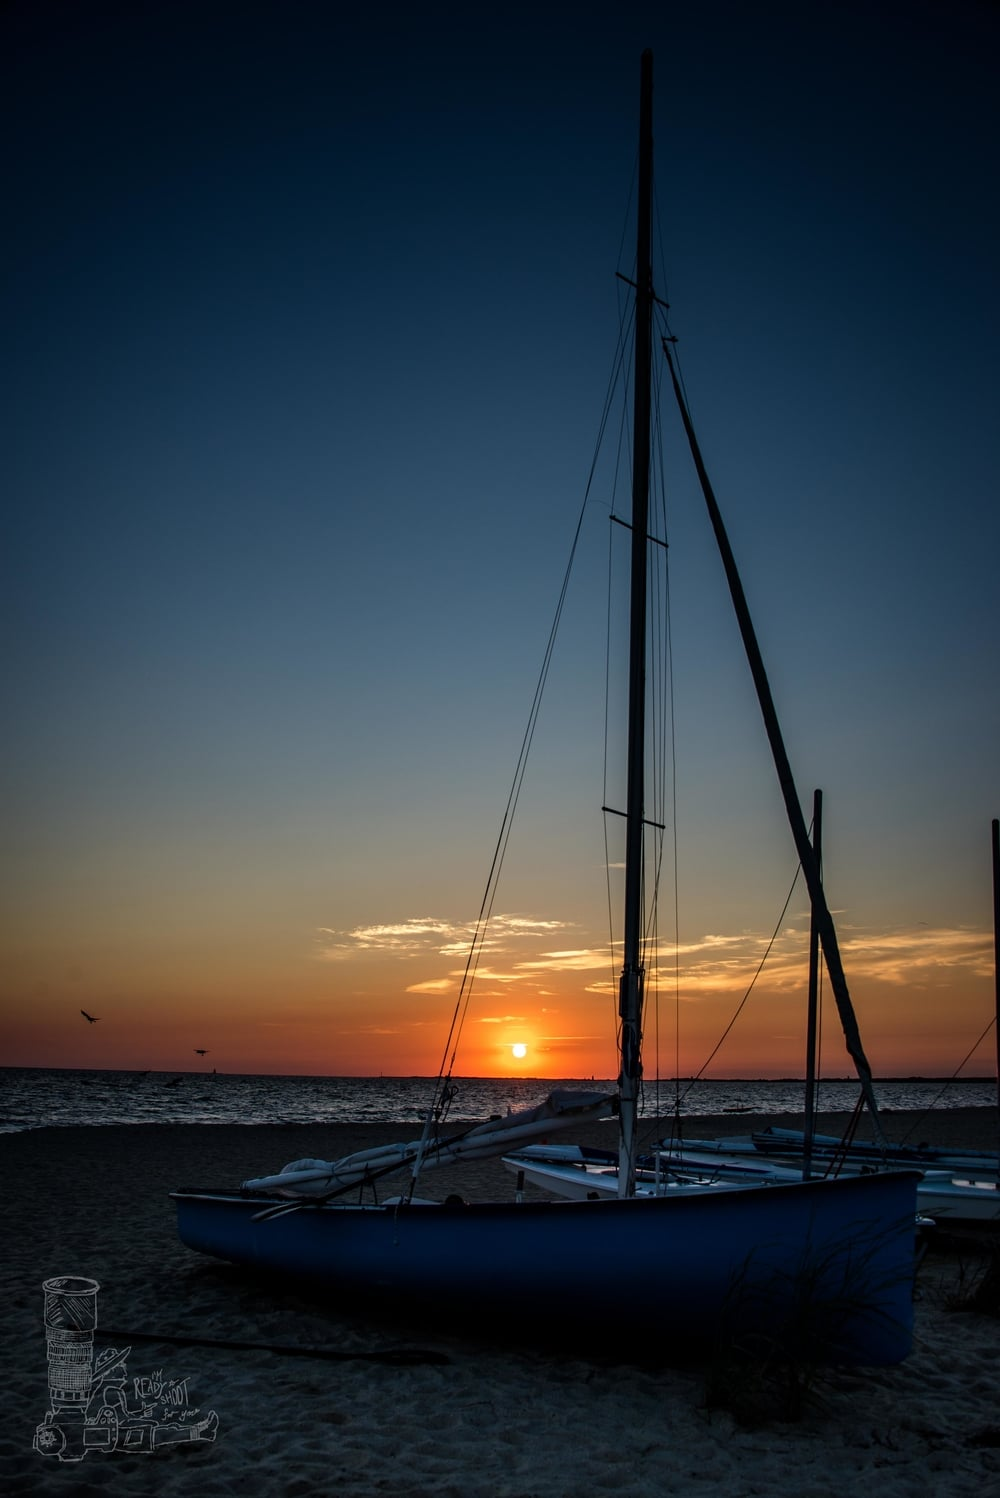 Sunrise & Sailboats